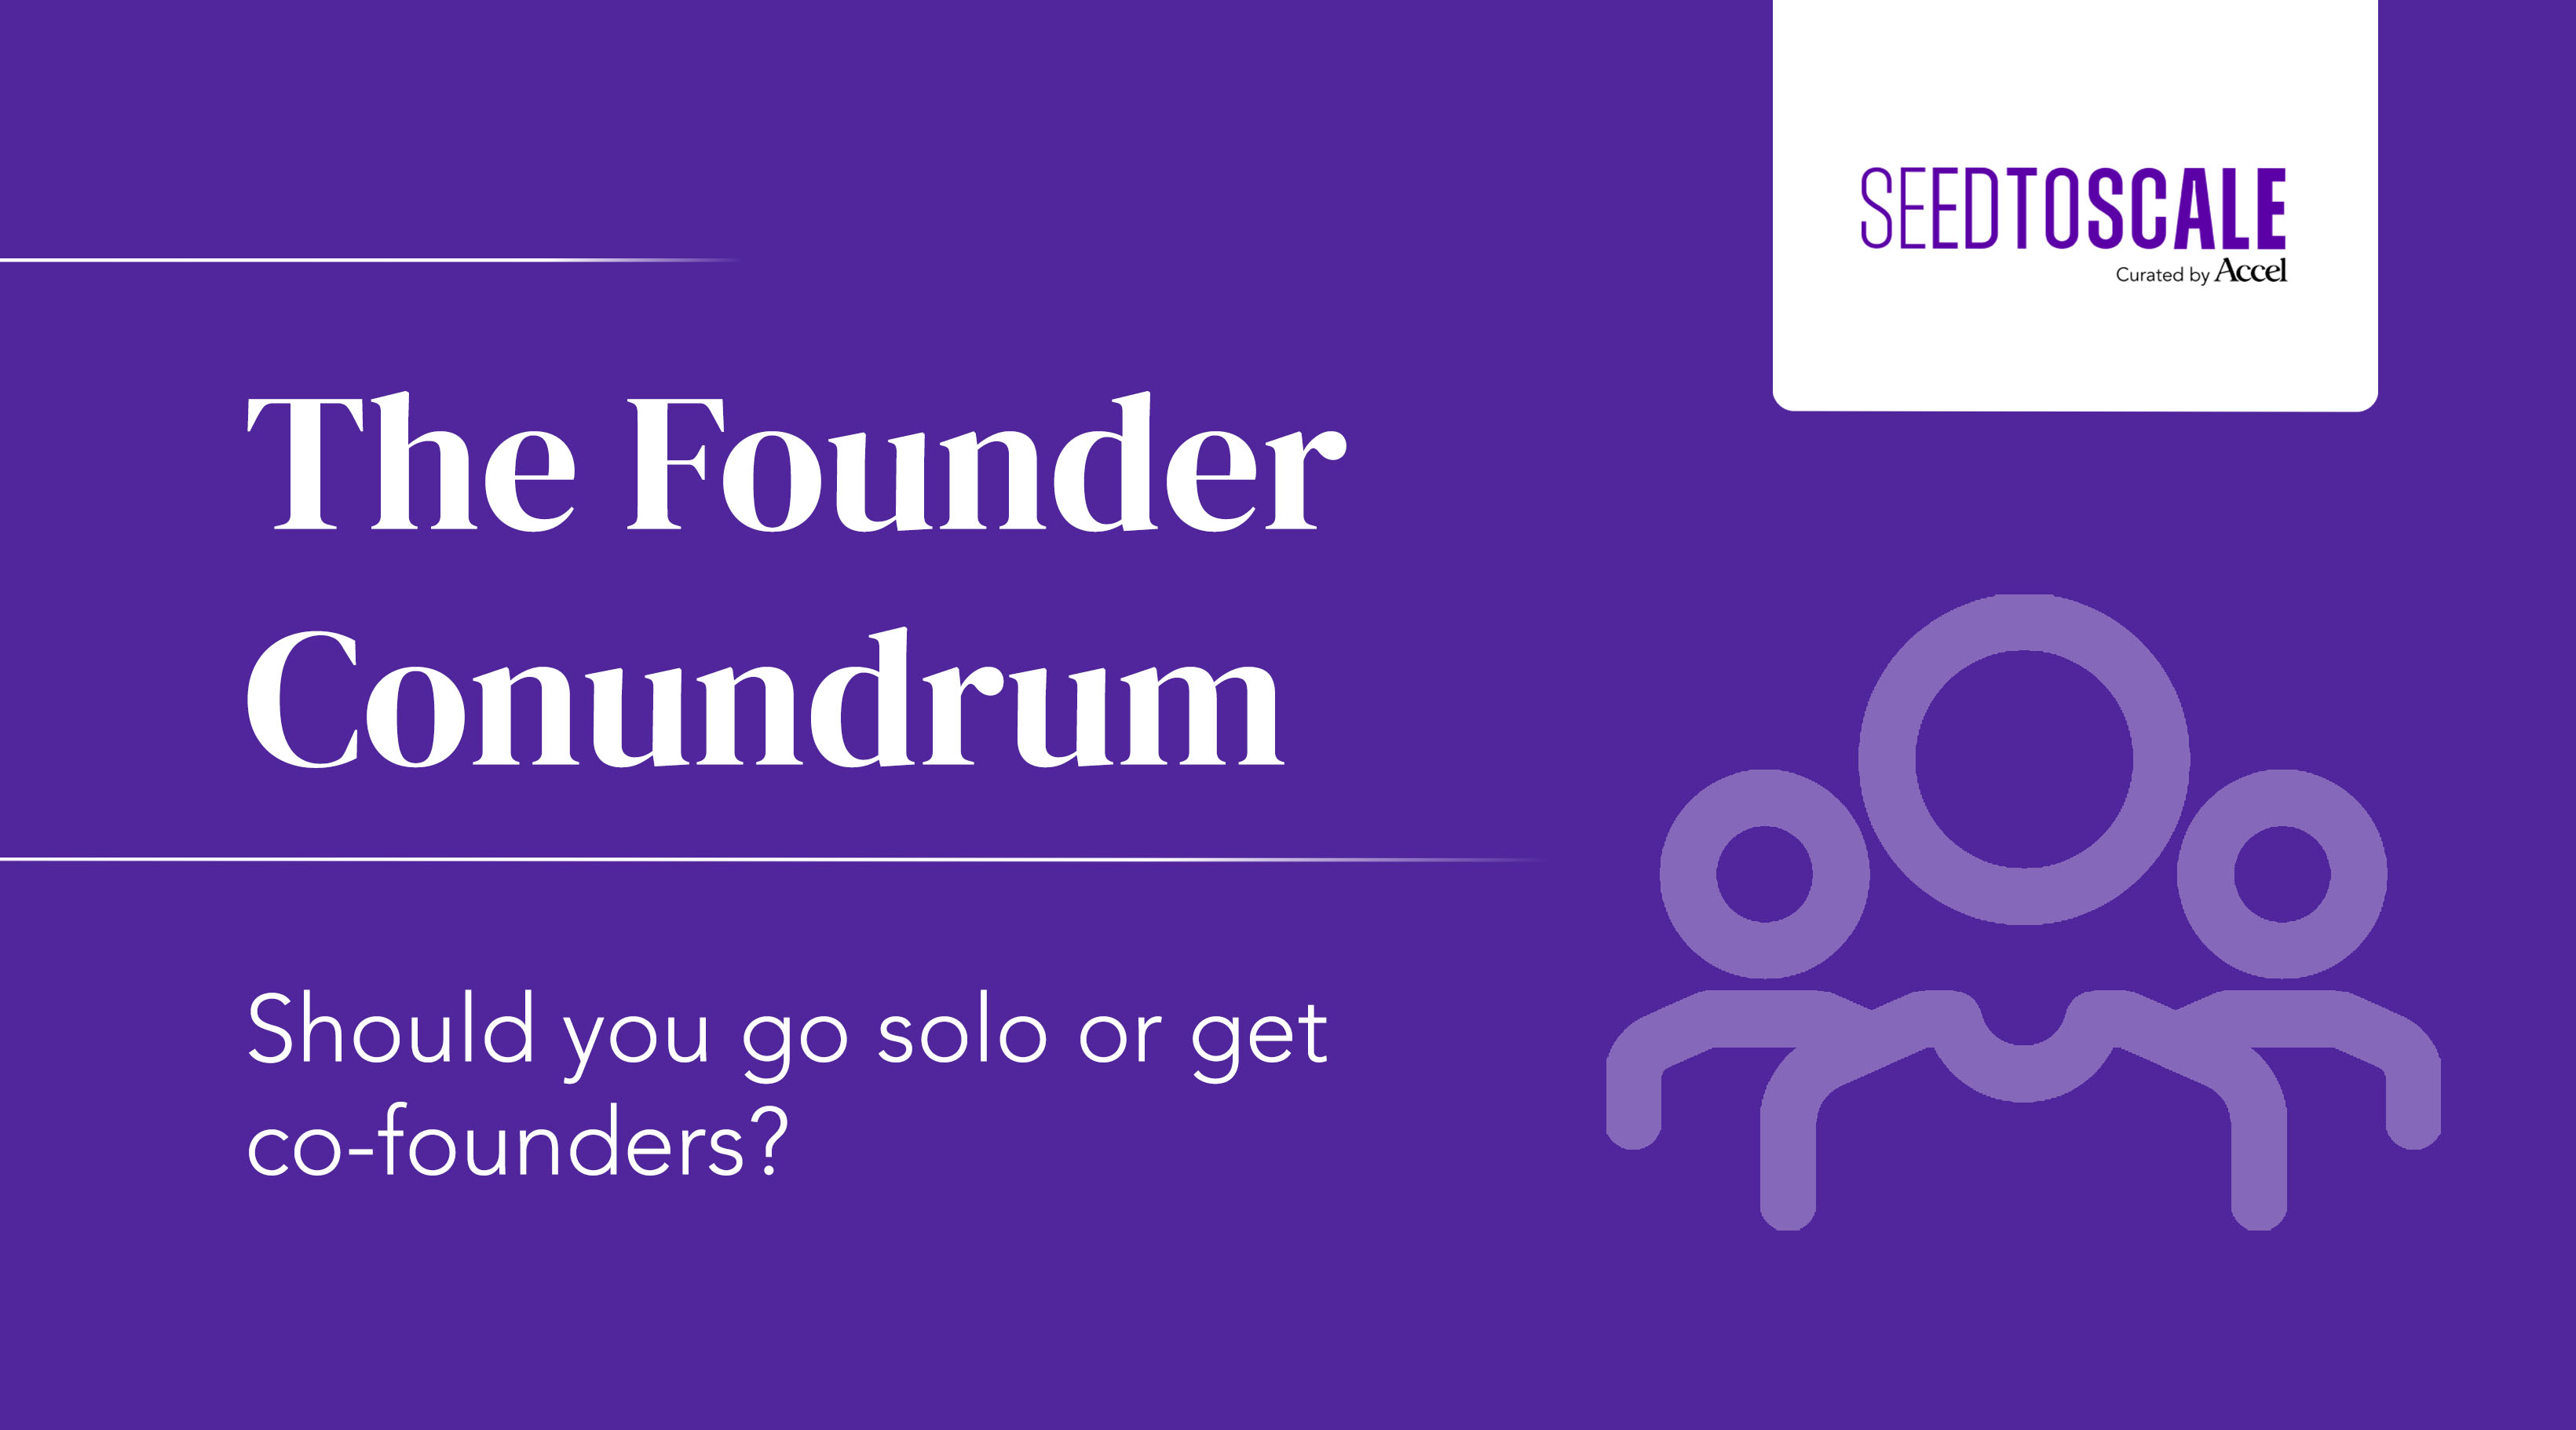 The Founder Conundrum: Should You Go Solo or Get Co-Founders?